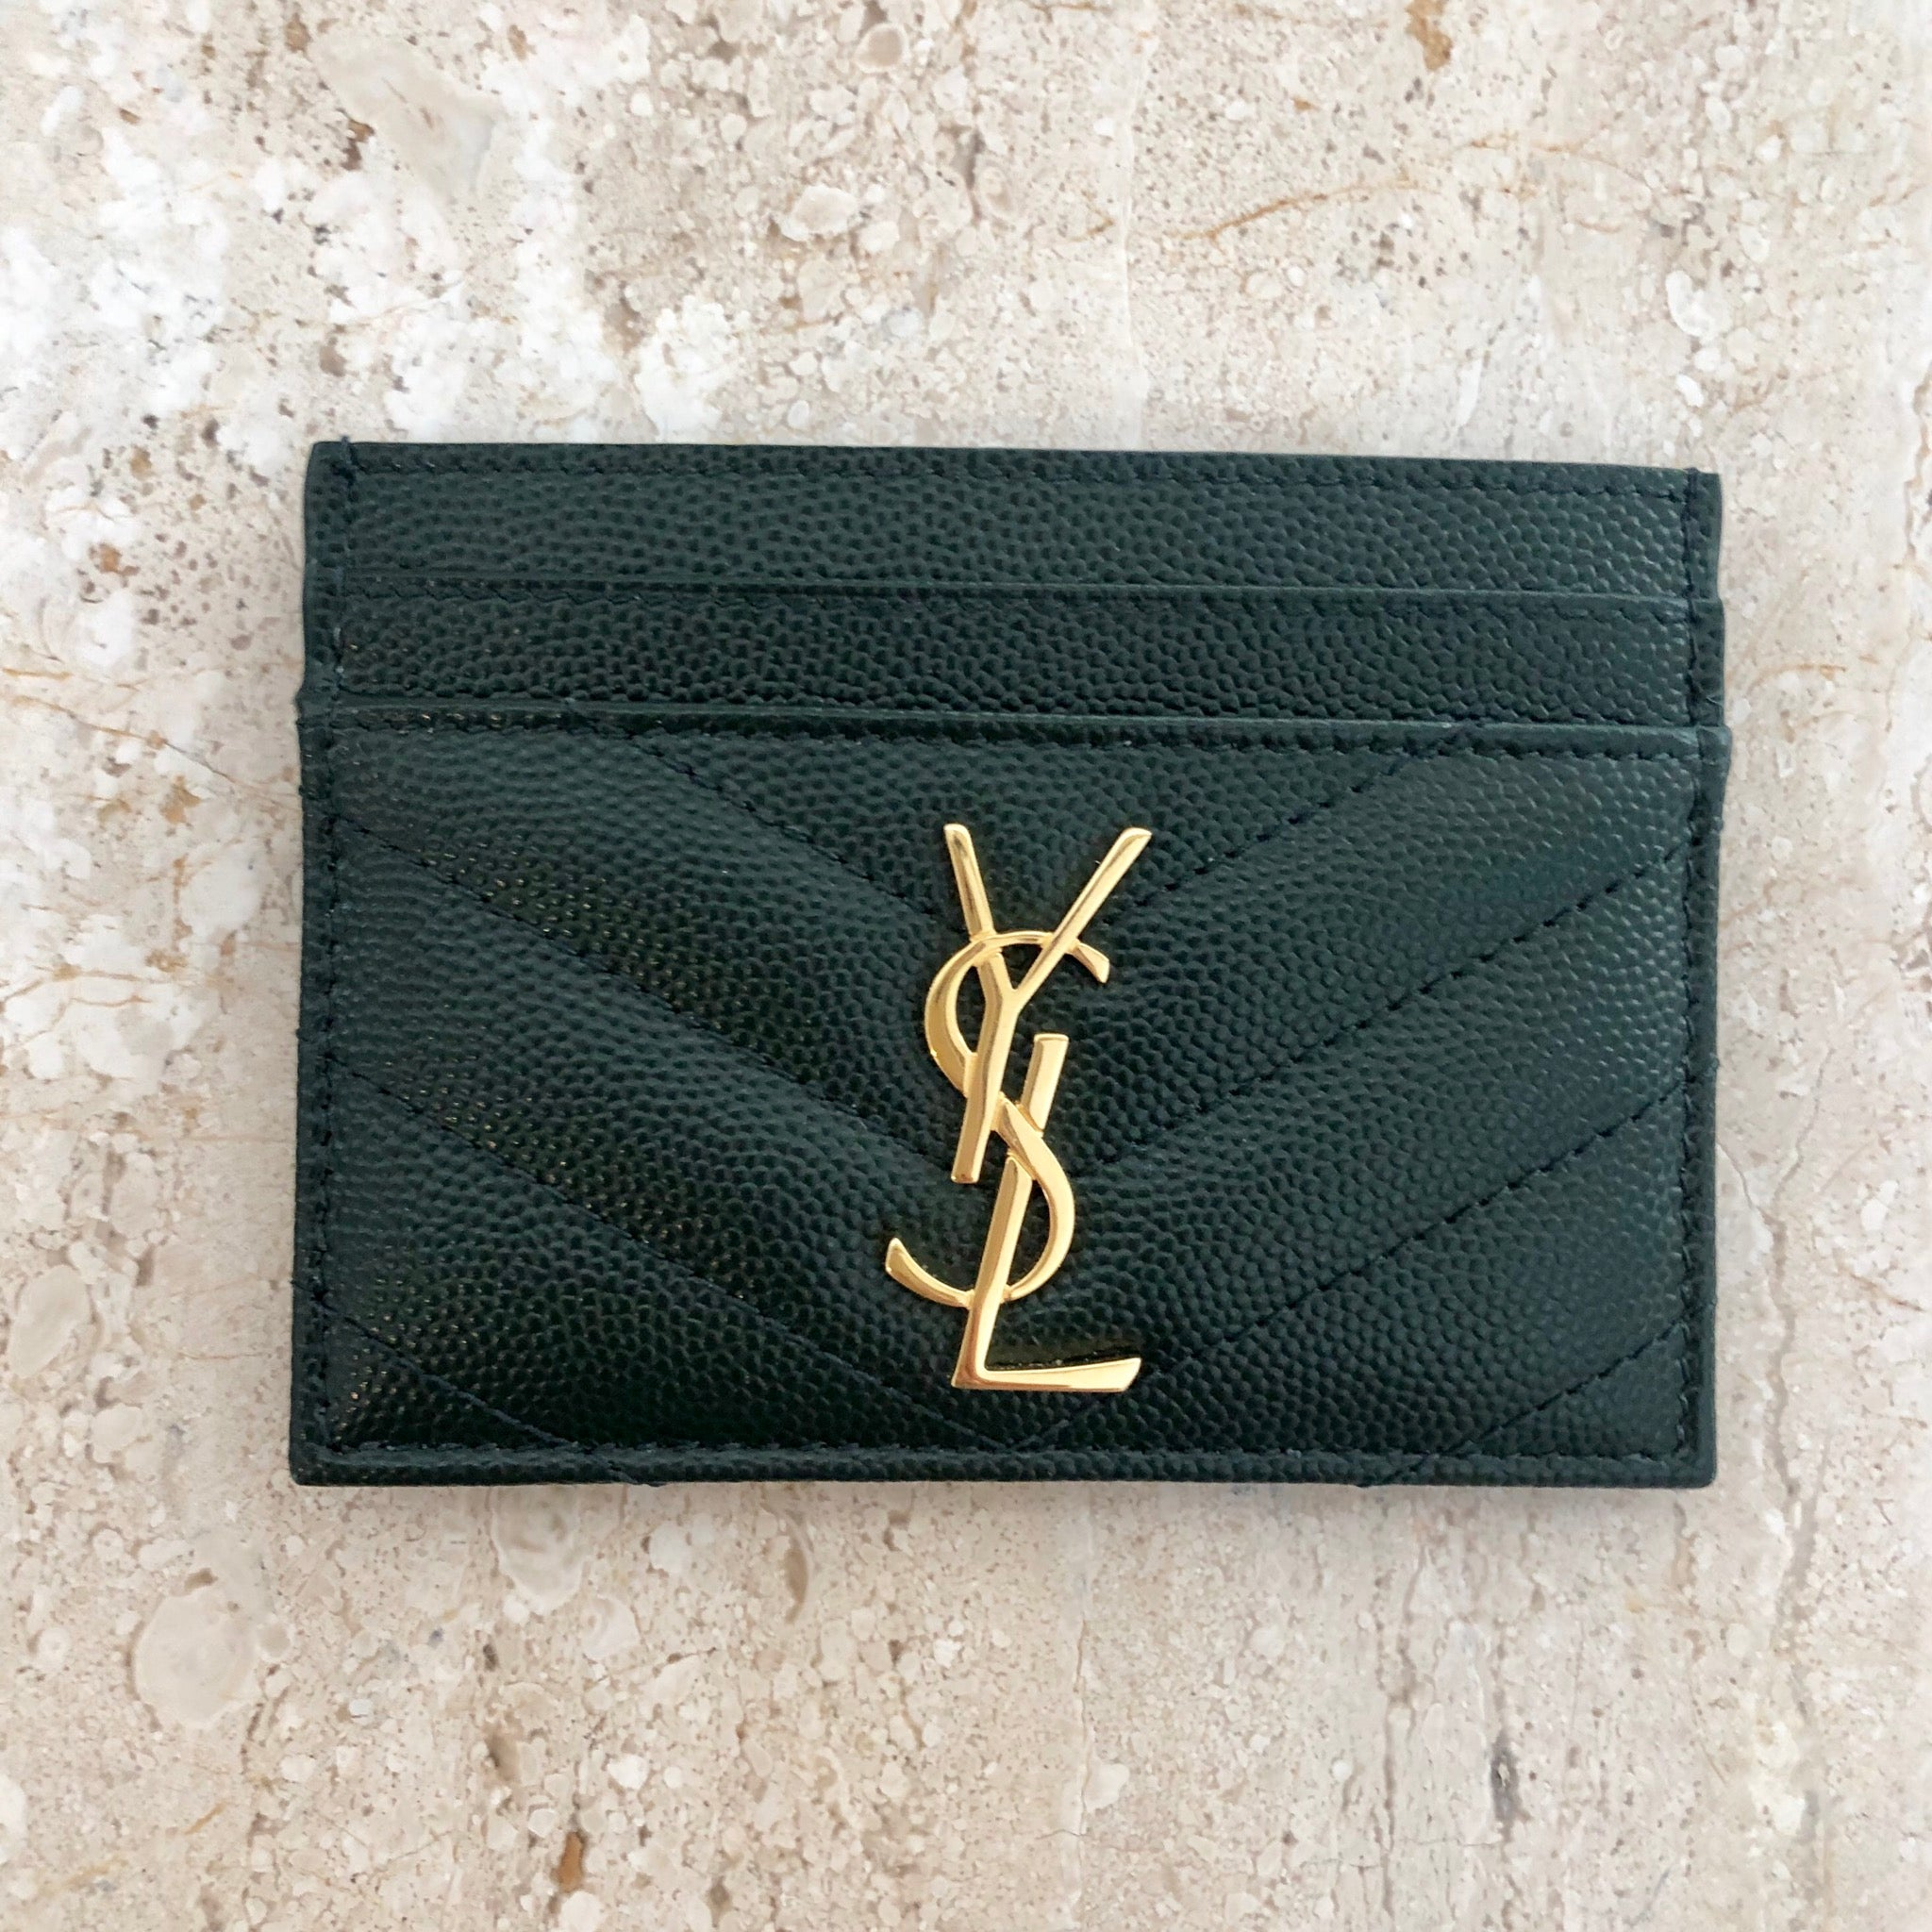 Authentic YVES SAINT LAURENT Forest Green Pebbled Leather Cardholder